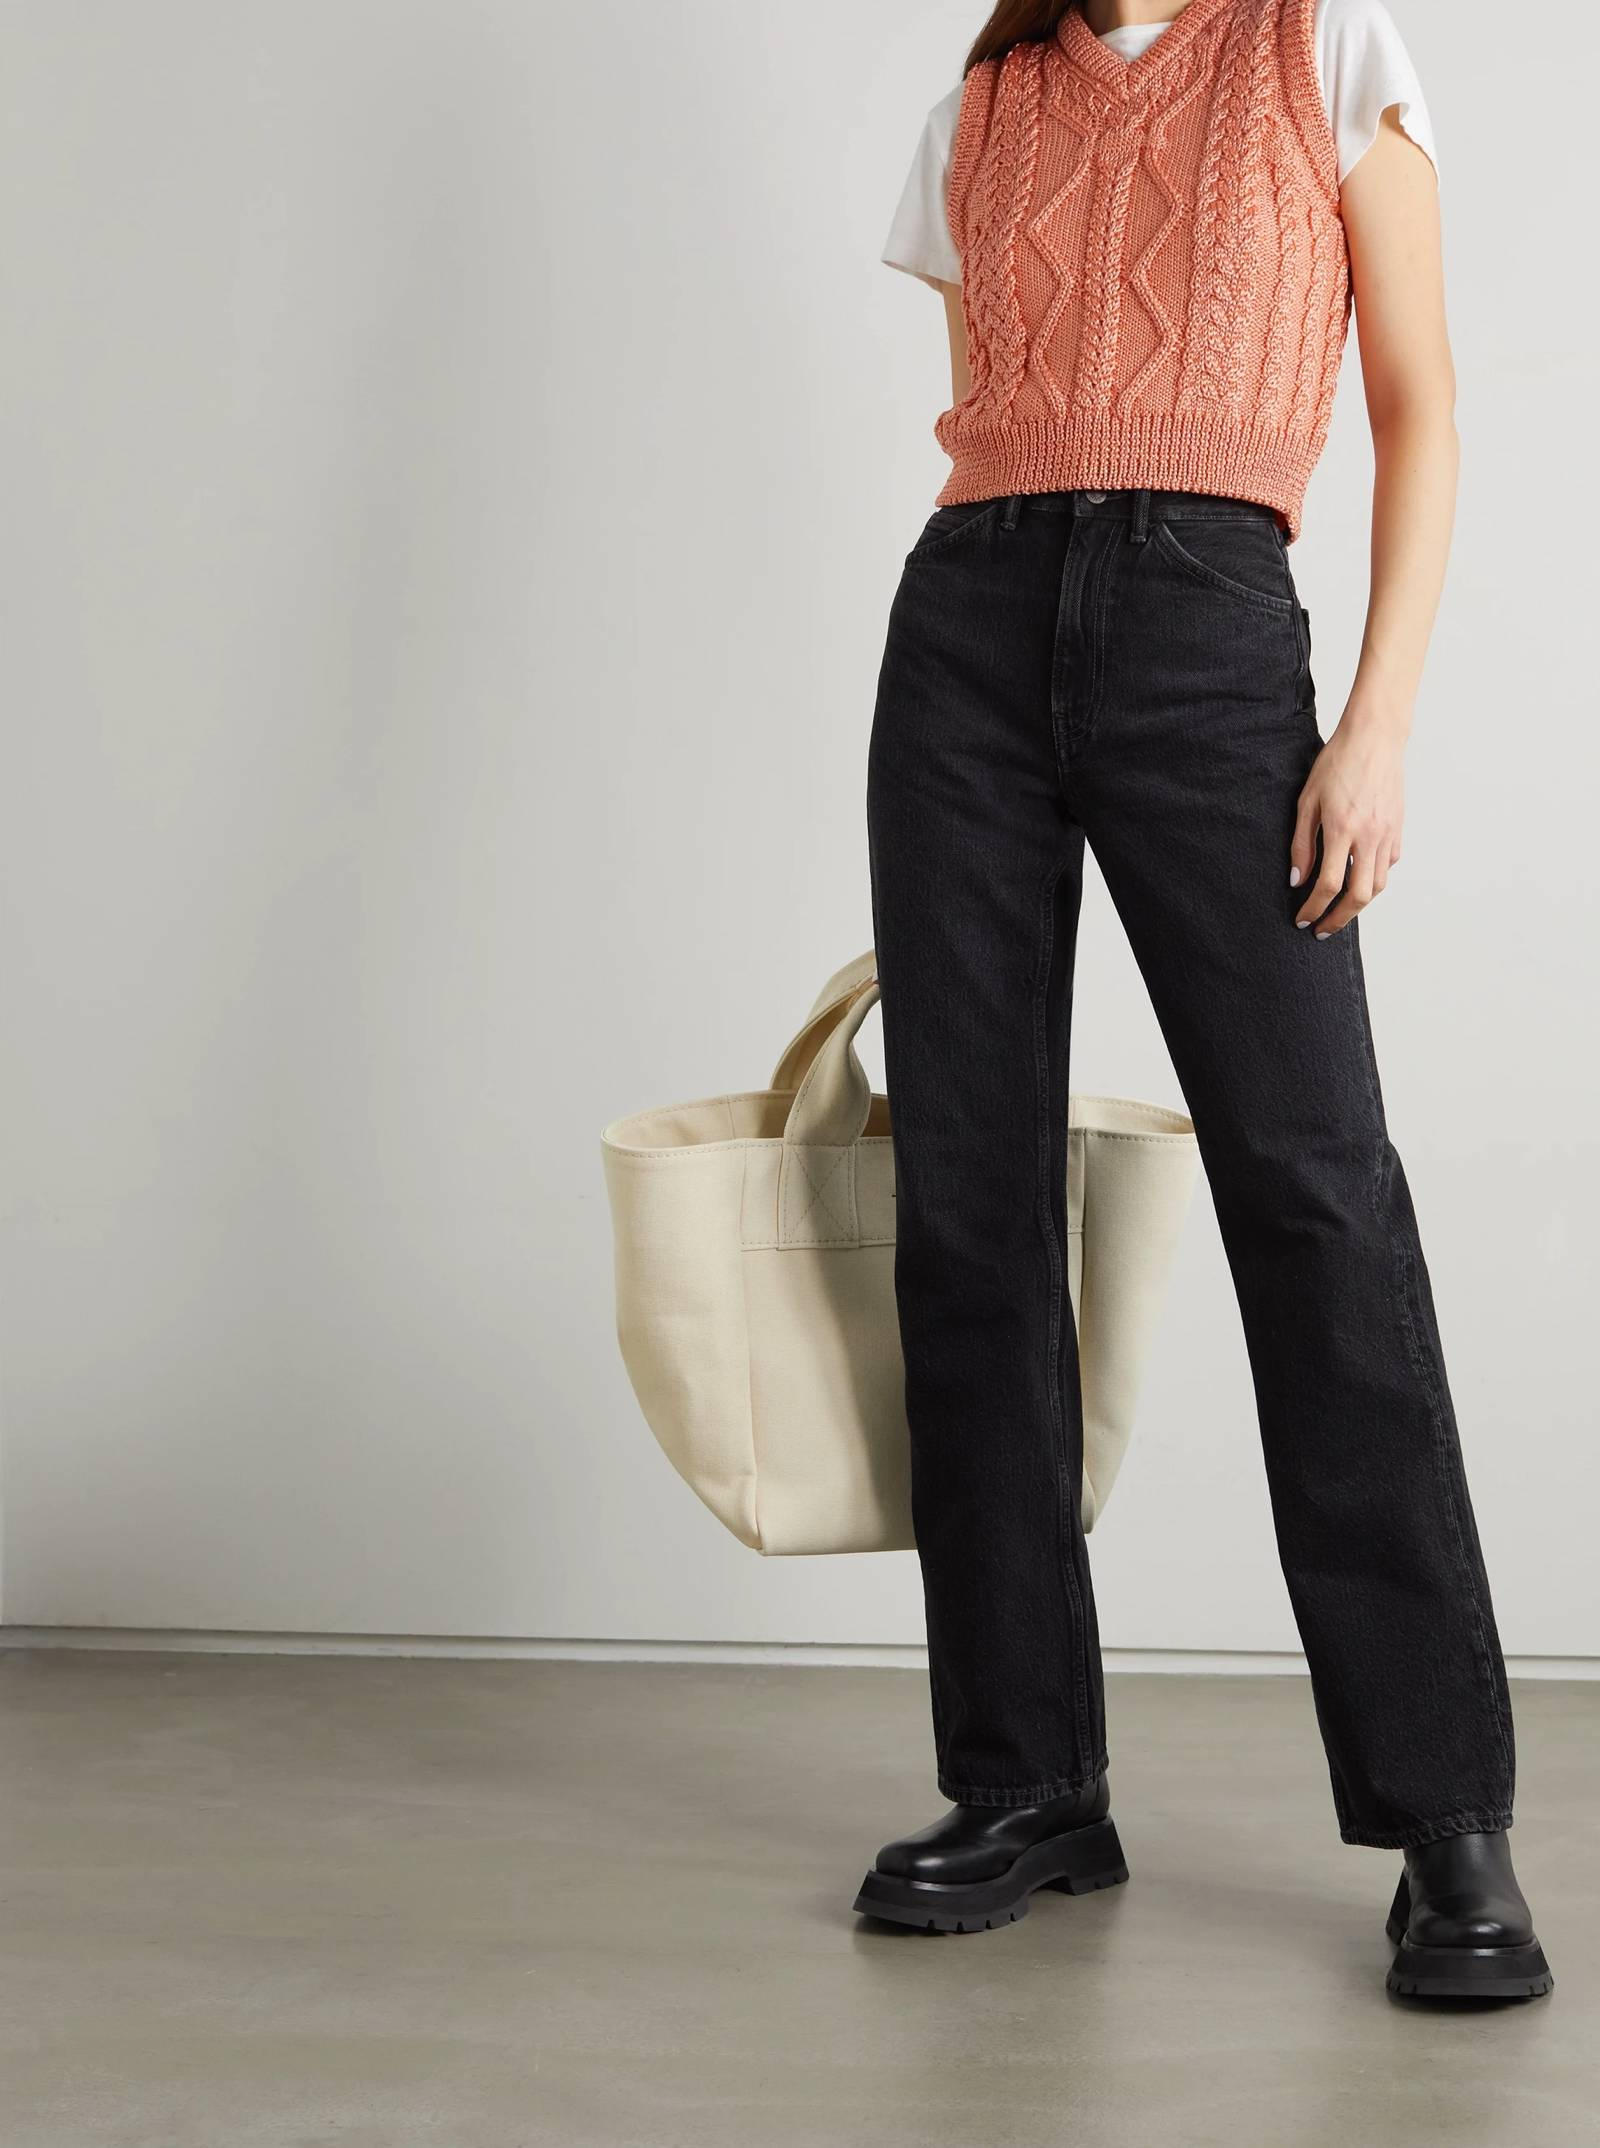 the combination of a sweater vest with jeans is perfect for an outdoor day